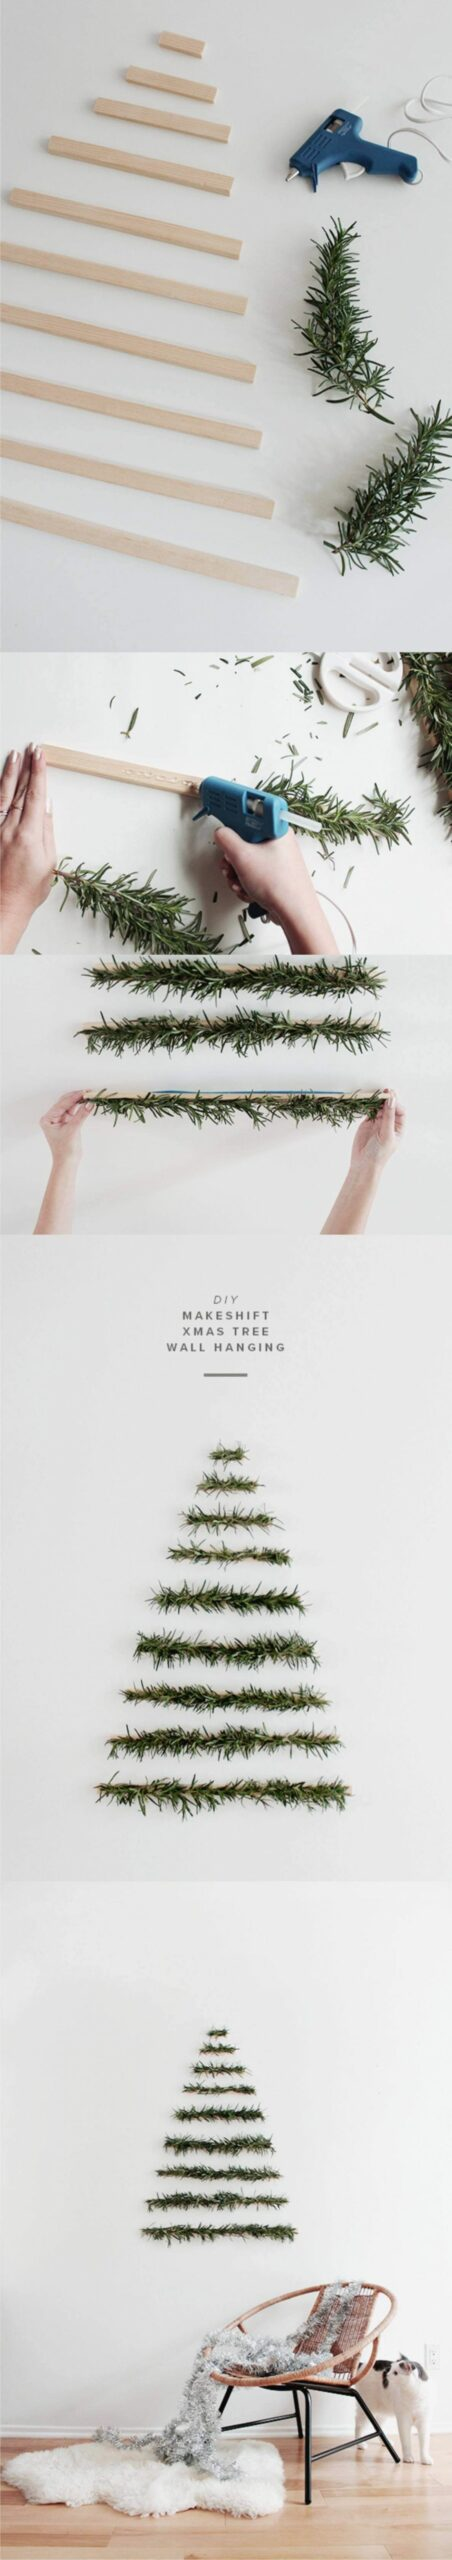 12 Best Christmas Wall Decor Ideas and Designs for 12